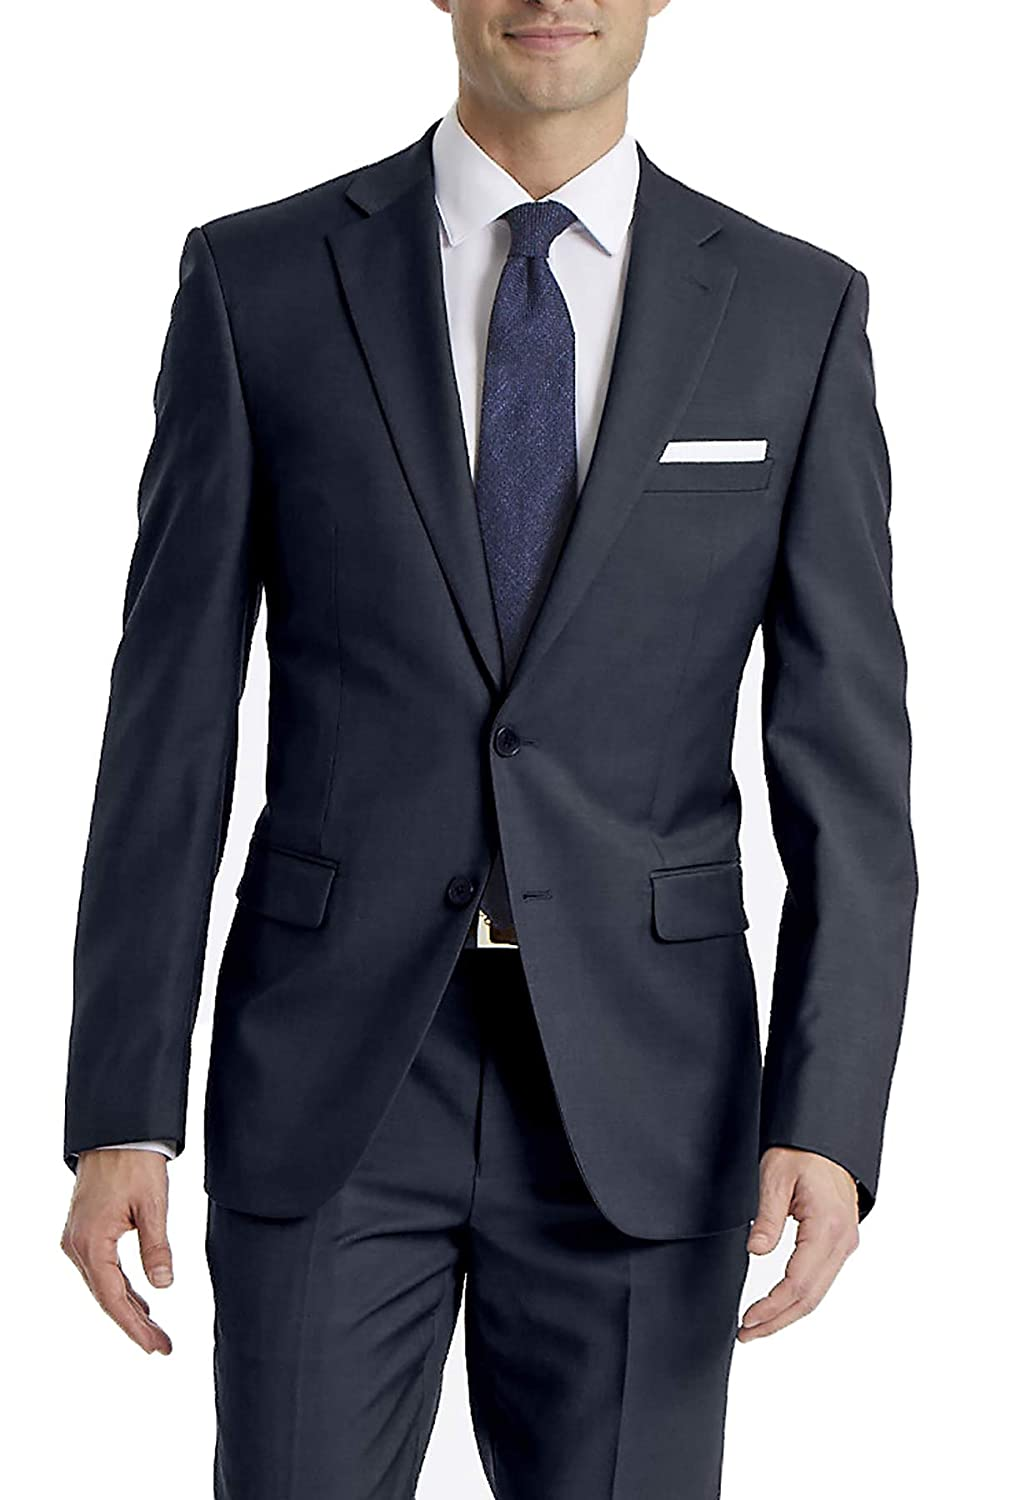 Dark-colored, business professional suit from Calvin Klein